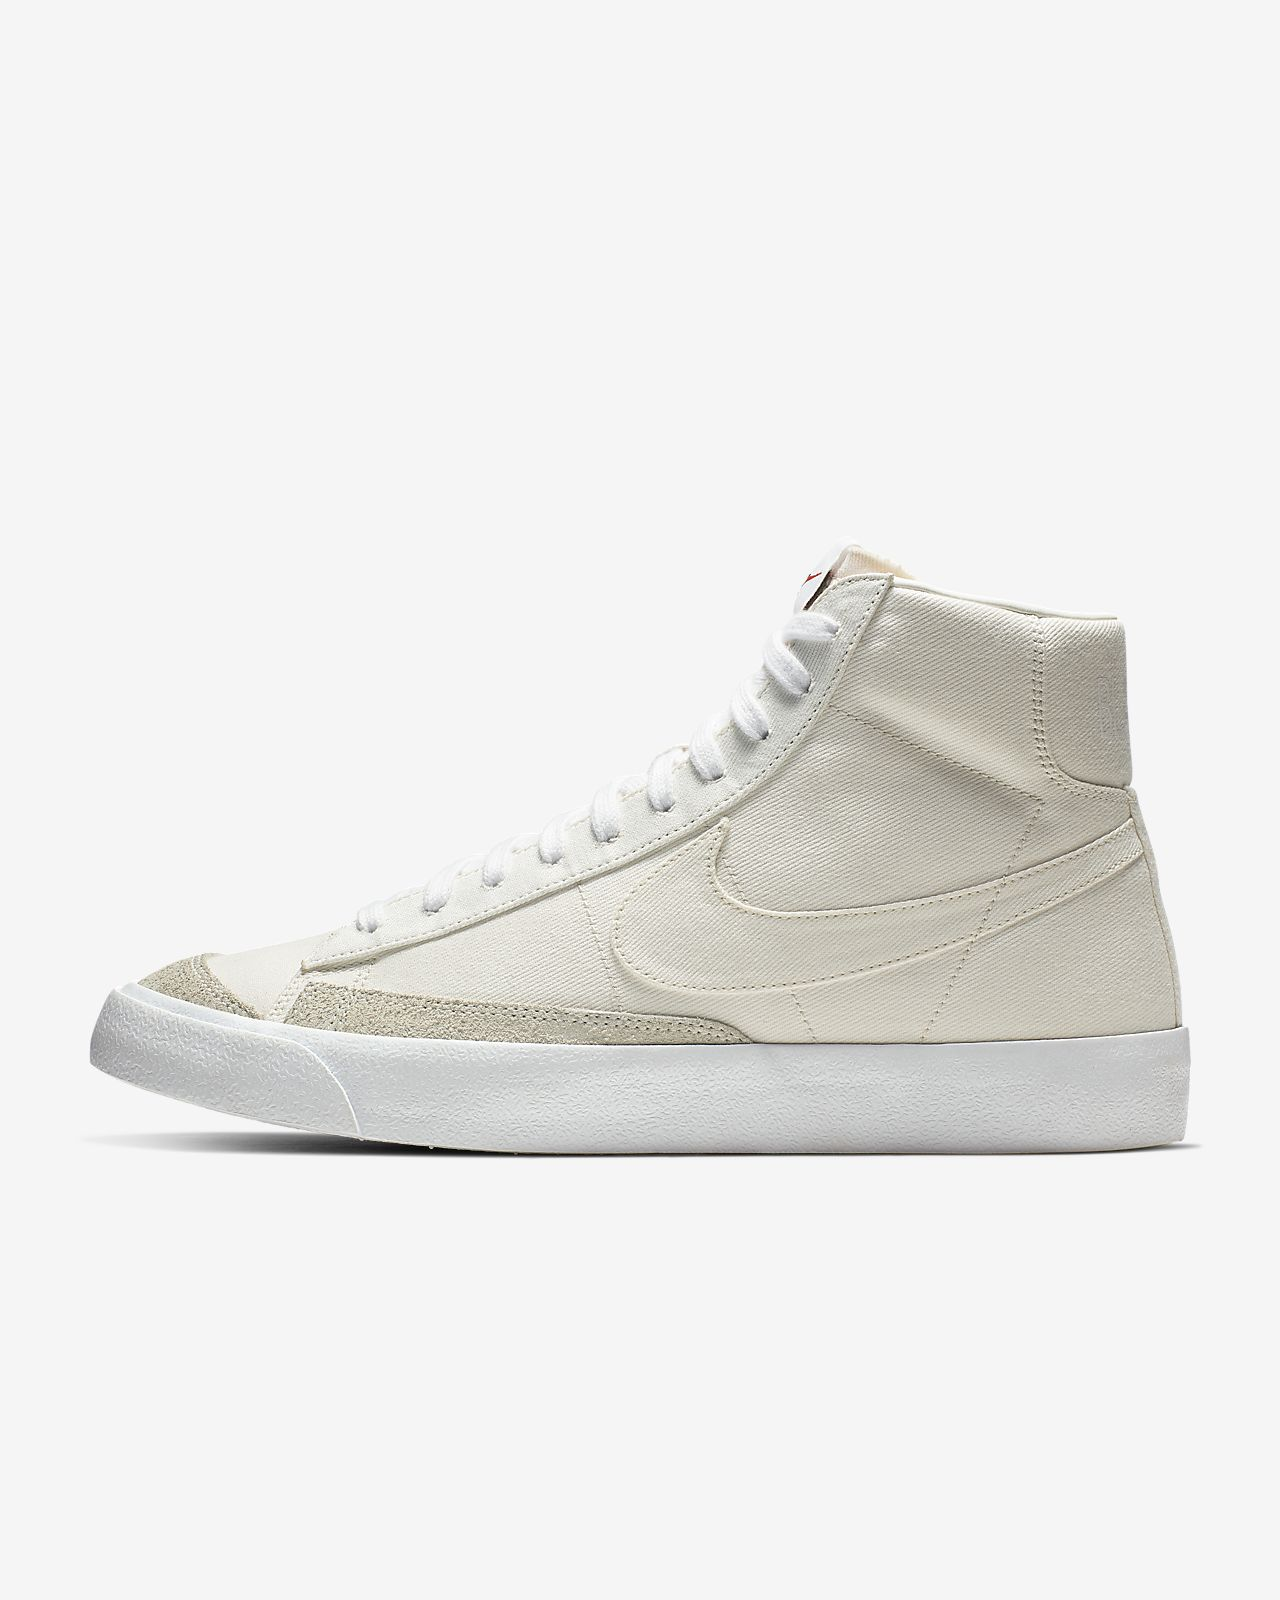 2019 Cheap Nike Blazer Mid 77 Sail CD8238 100 Cheap Nike